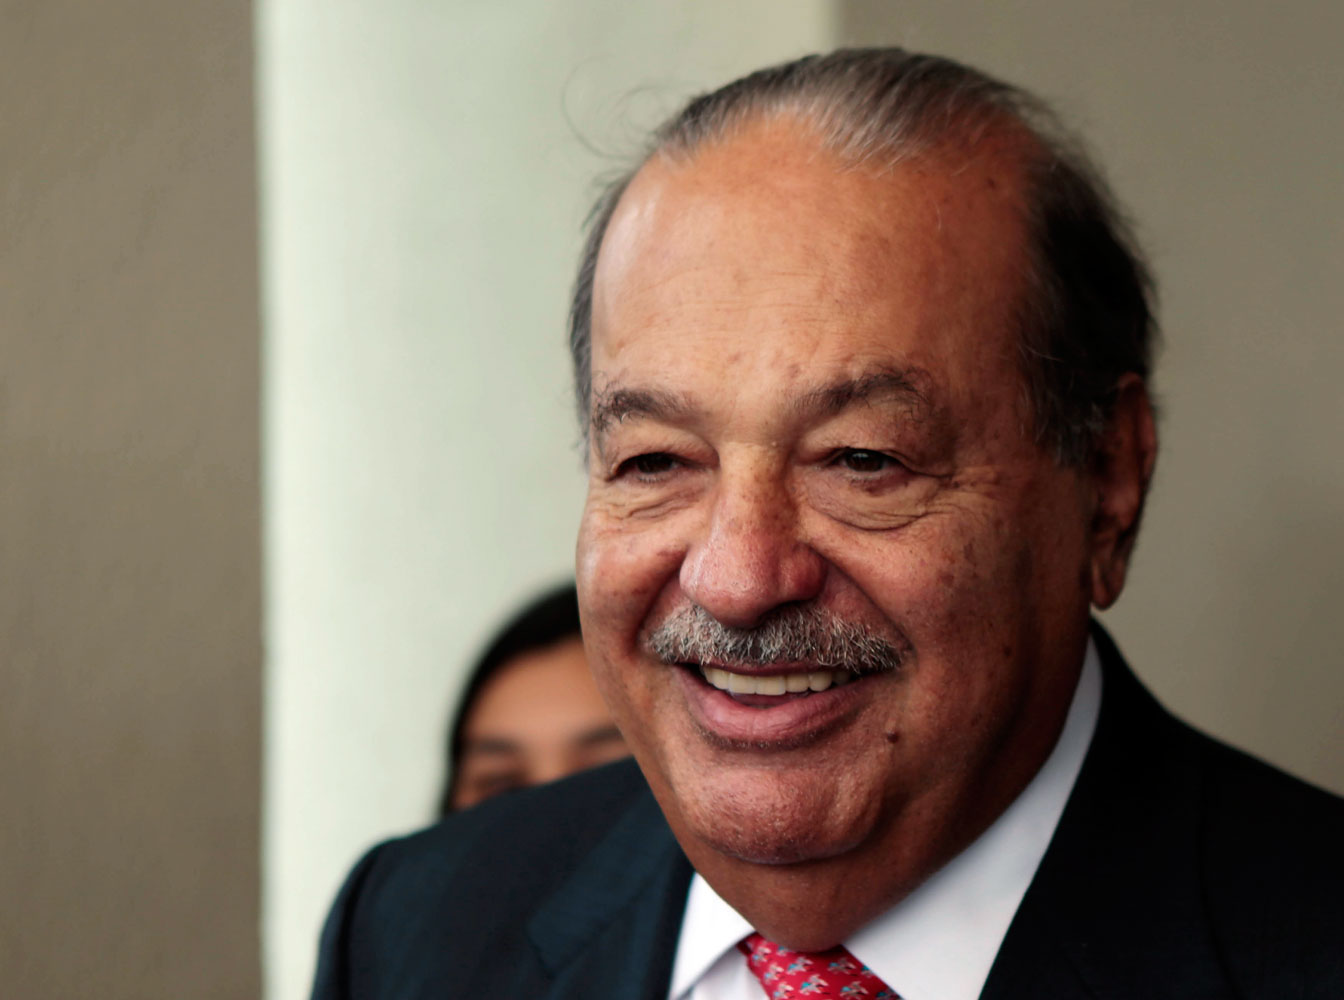 Mexican businessman Carlos Slim attends the 20th annual meeting of the Circulo de Montevideo Fundation in Luque, Paraguay July 17, 2014.